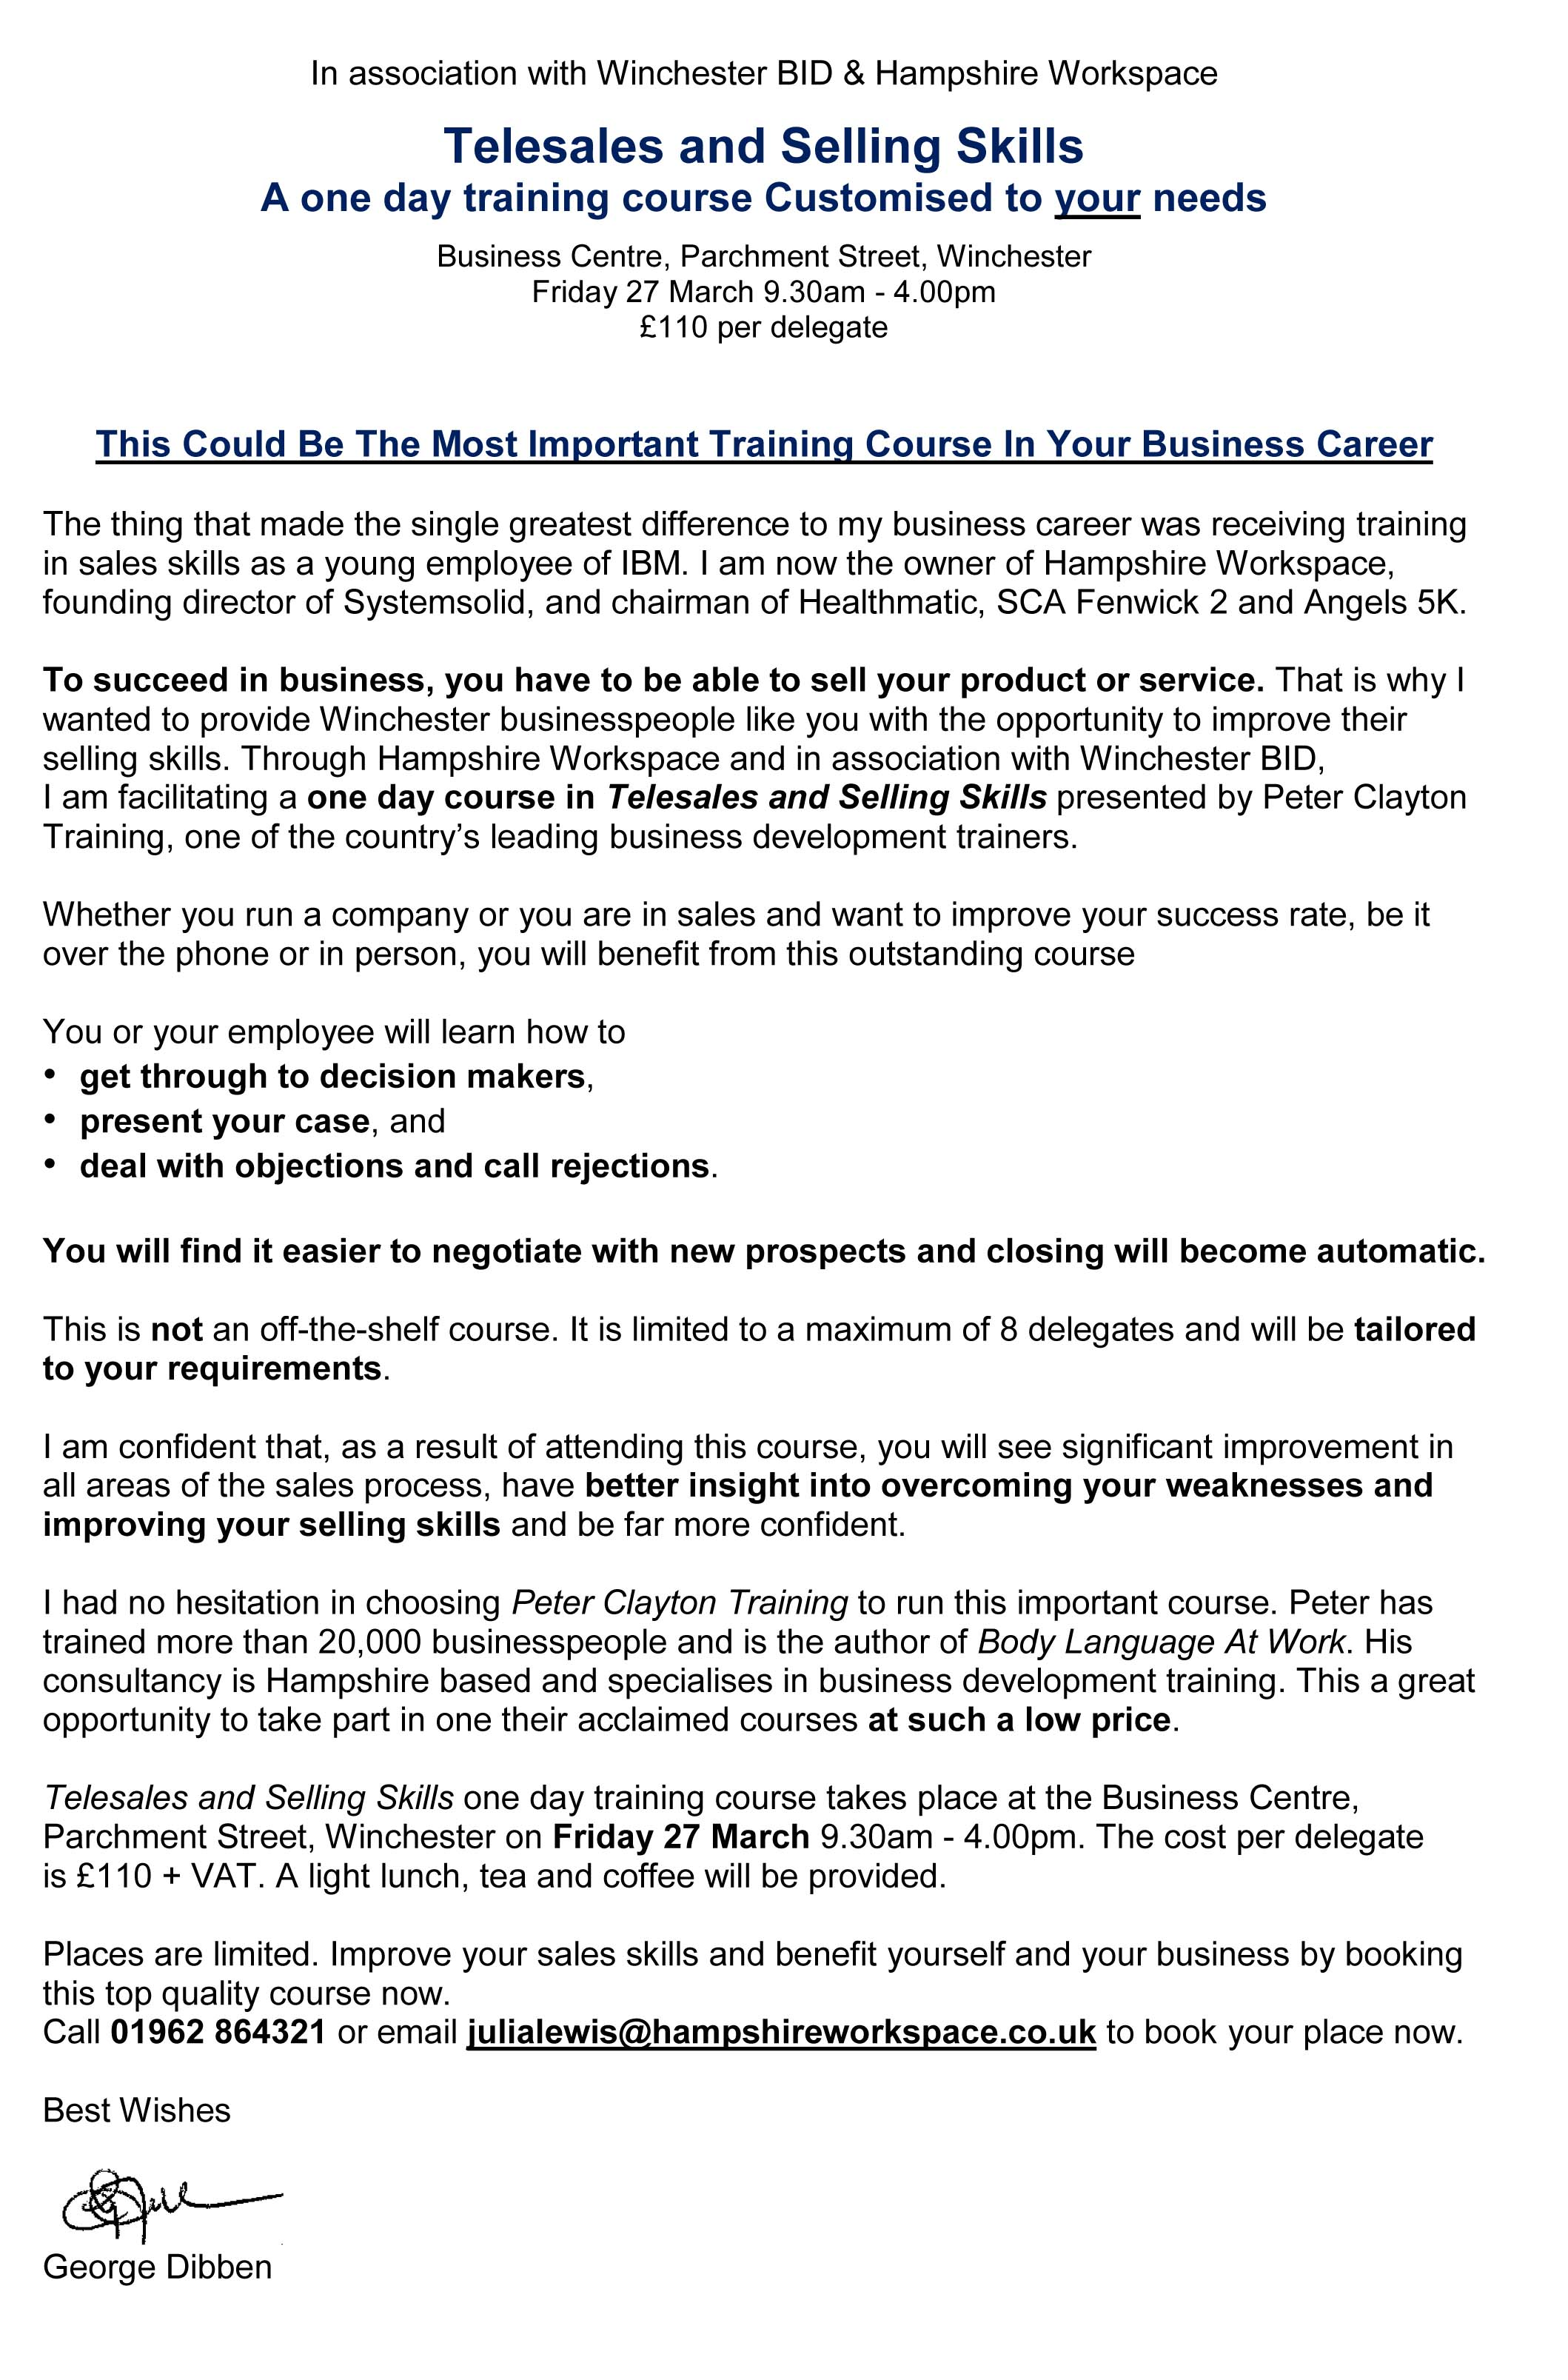 final places reduced cost bespoke telesales and selling skills